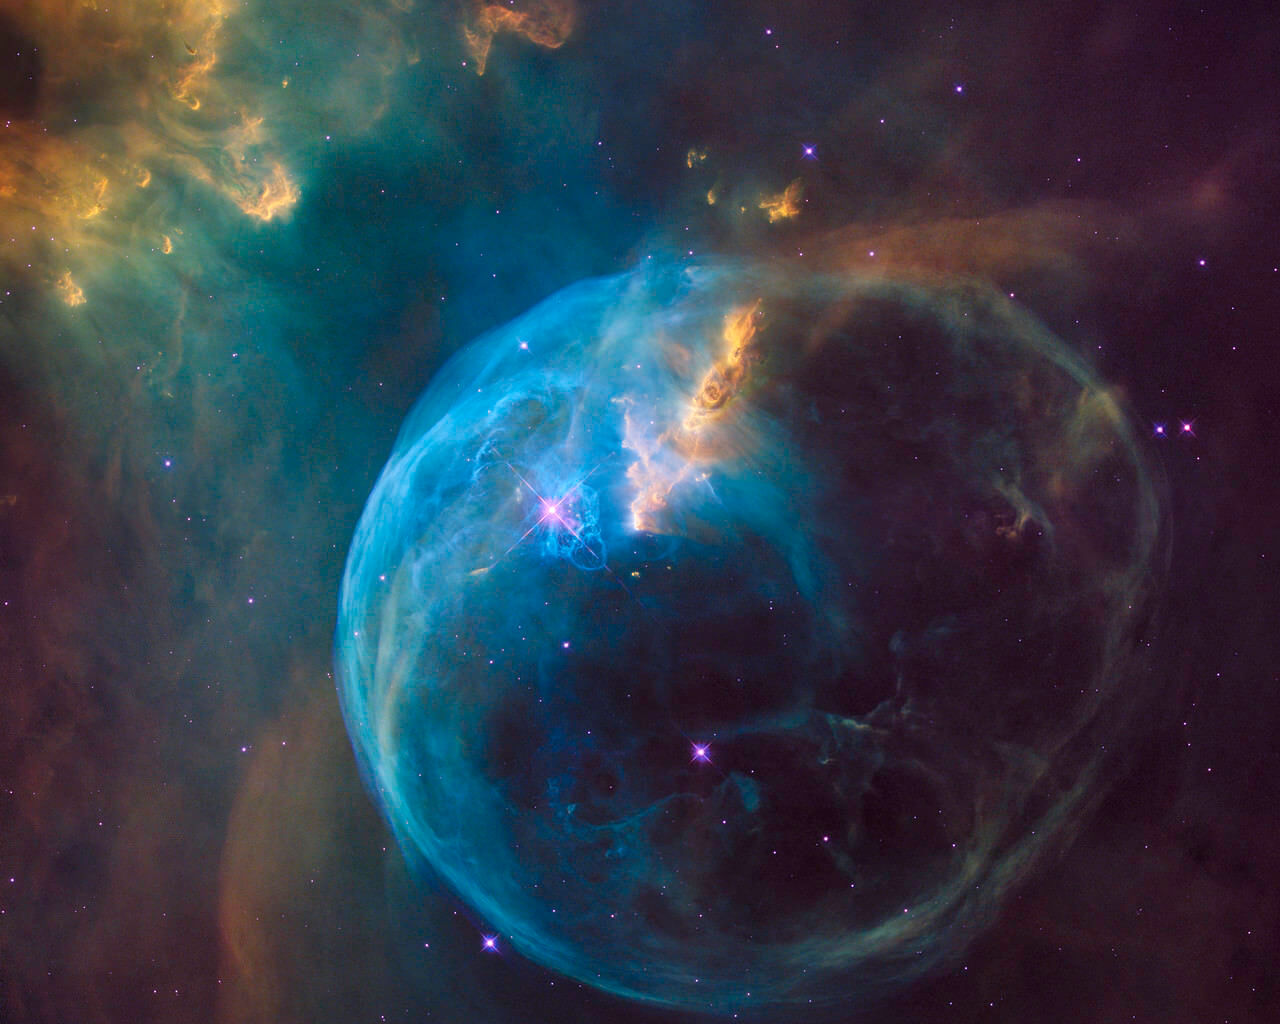 space is so cool - hubble pictures 17 (1)